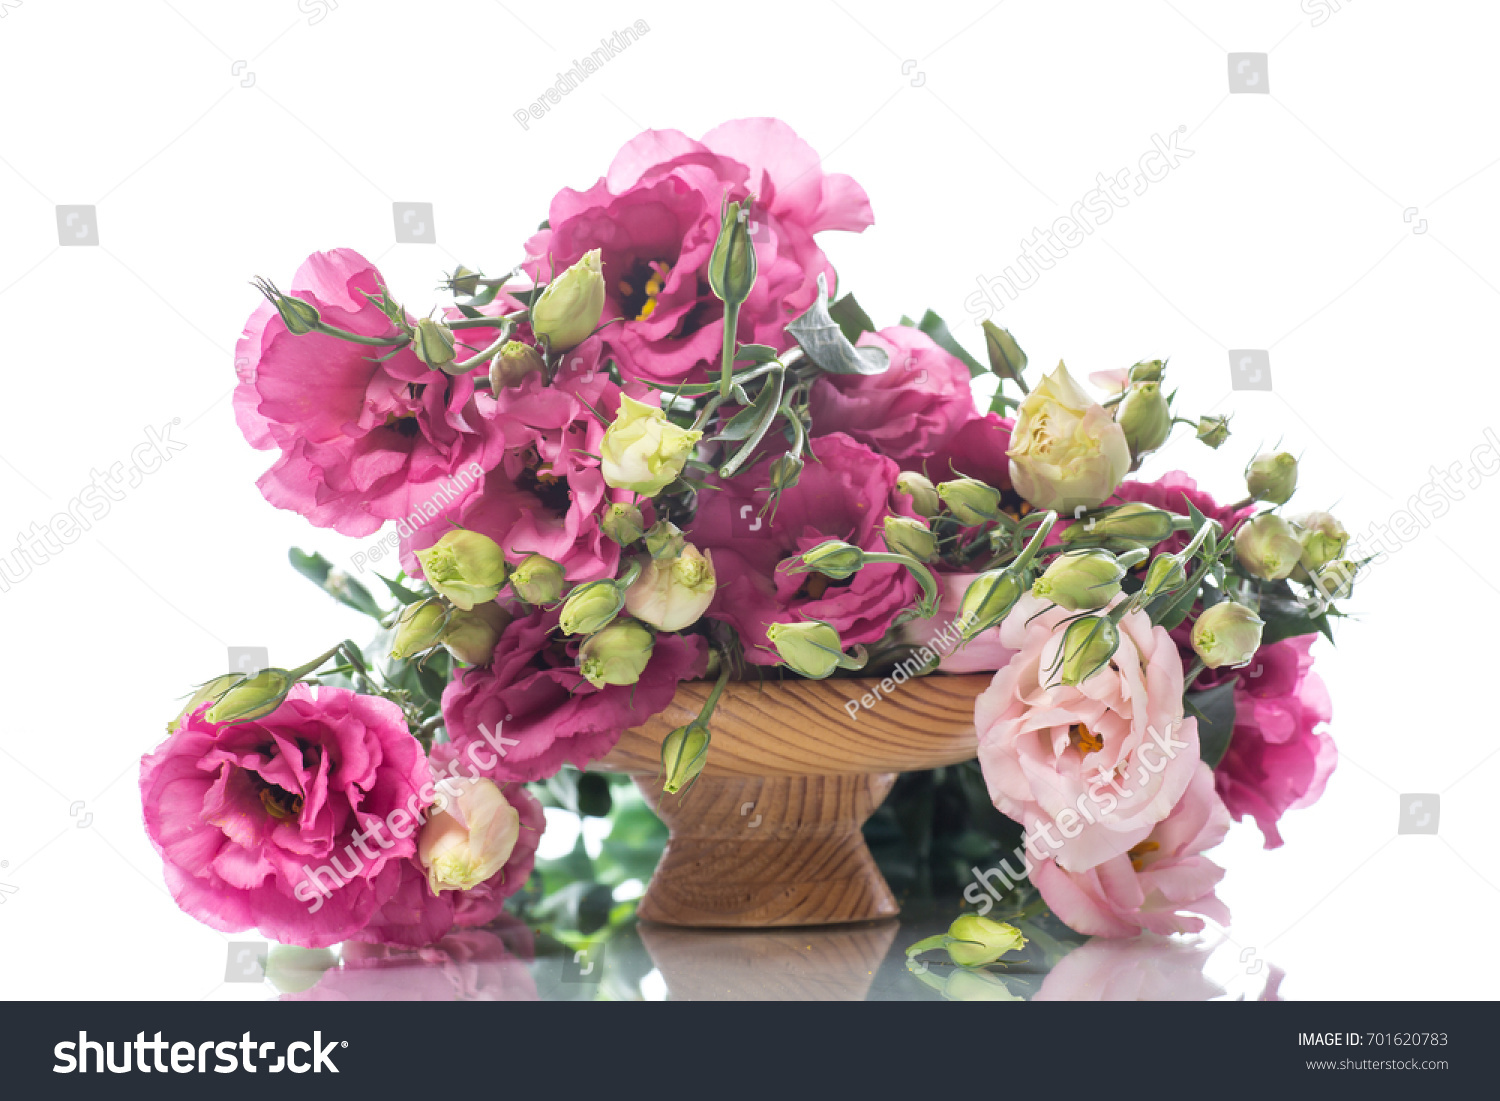 Beautiful Bouquet Of Pink Lisianthus Flowers On A White Background